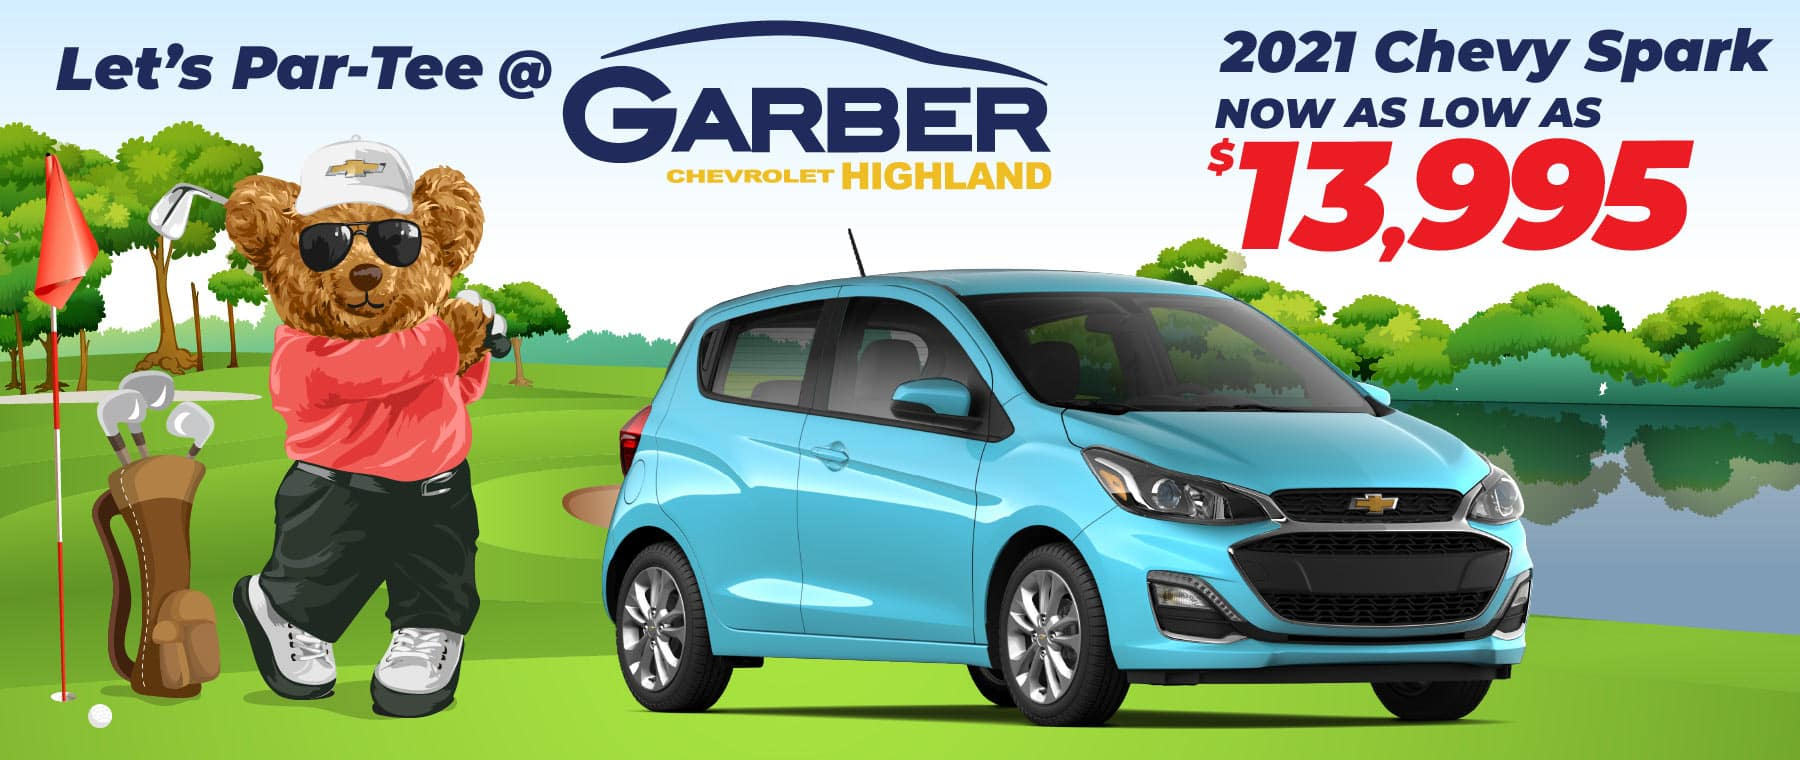 2021 Chevy Spark - now as low as $13,995